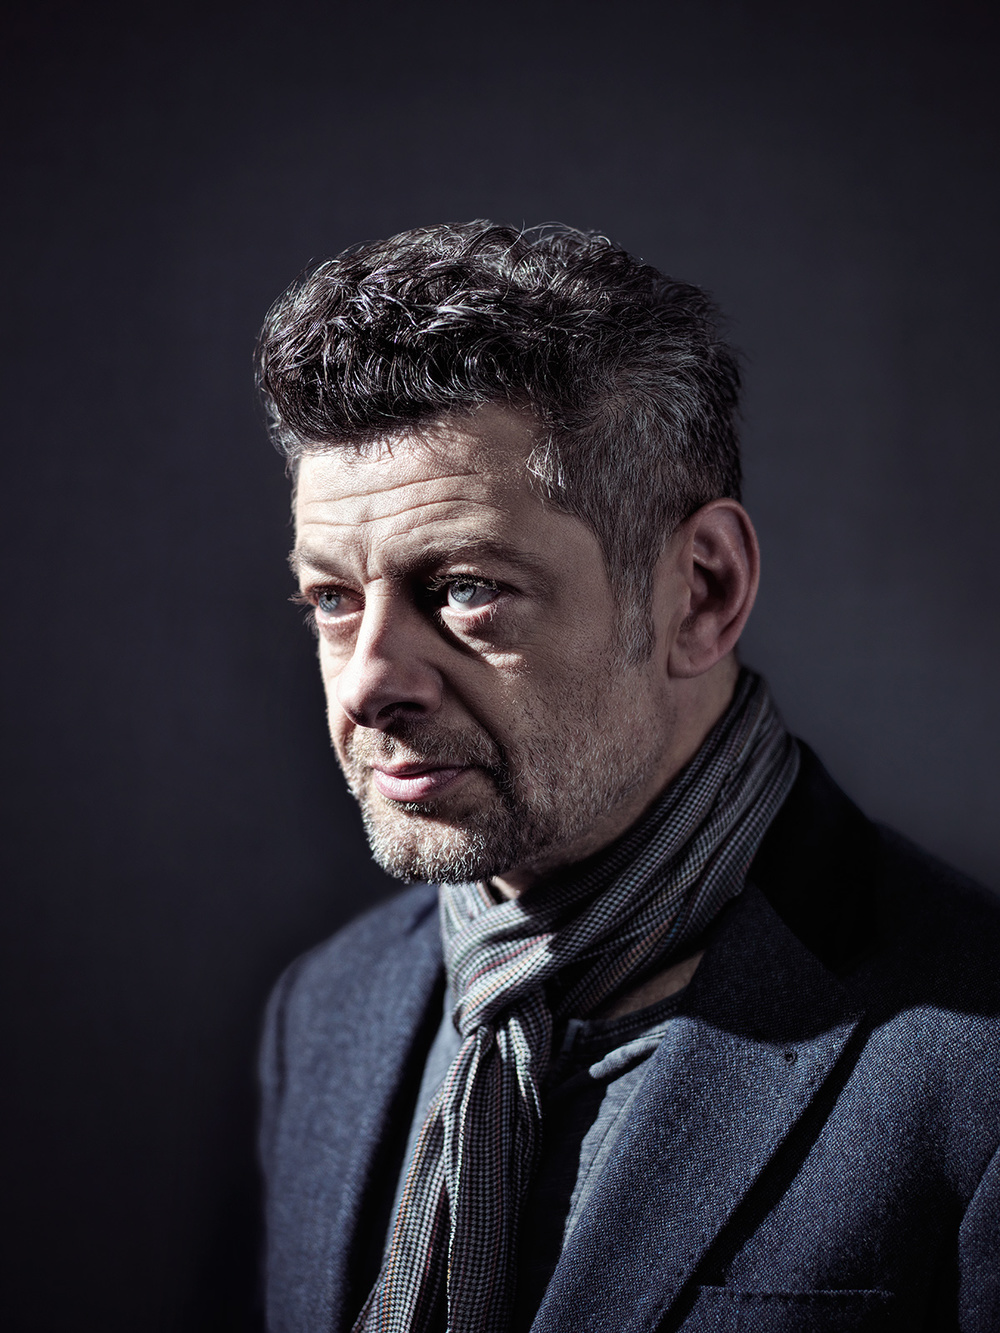 Andy Serkis was at the Biltmore at the same time as us!